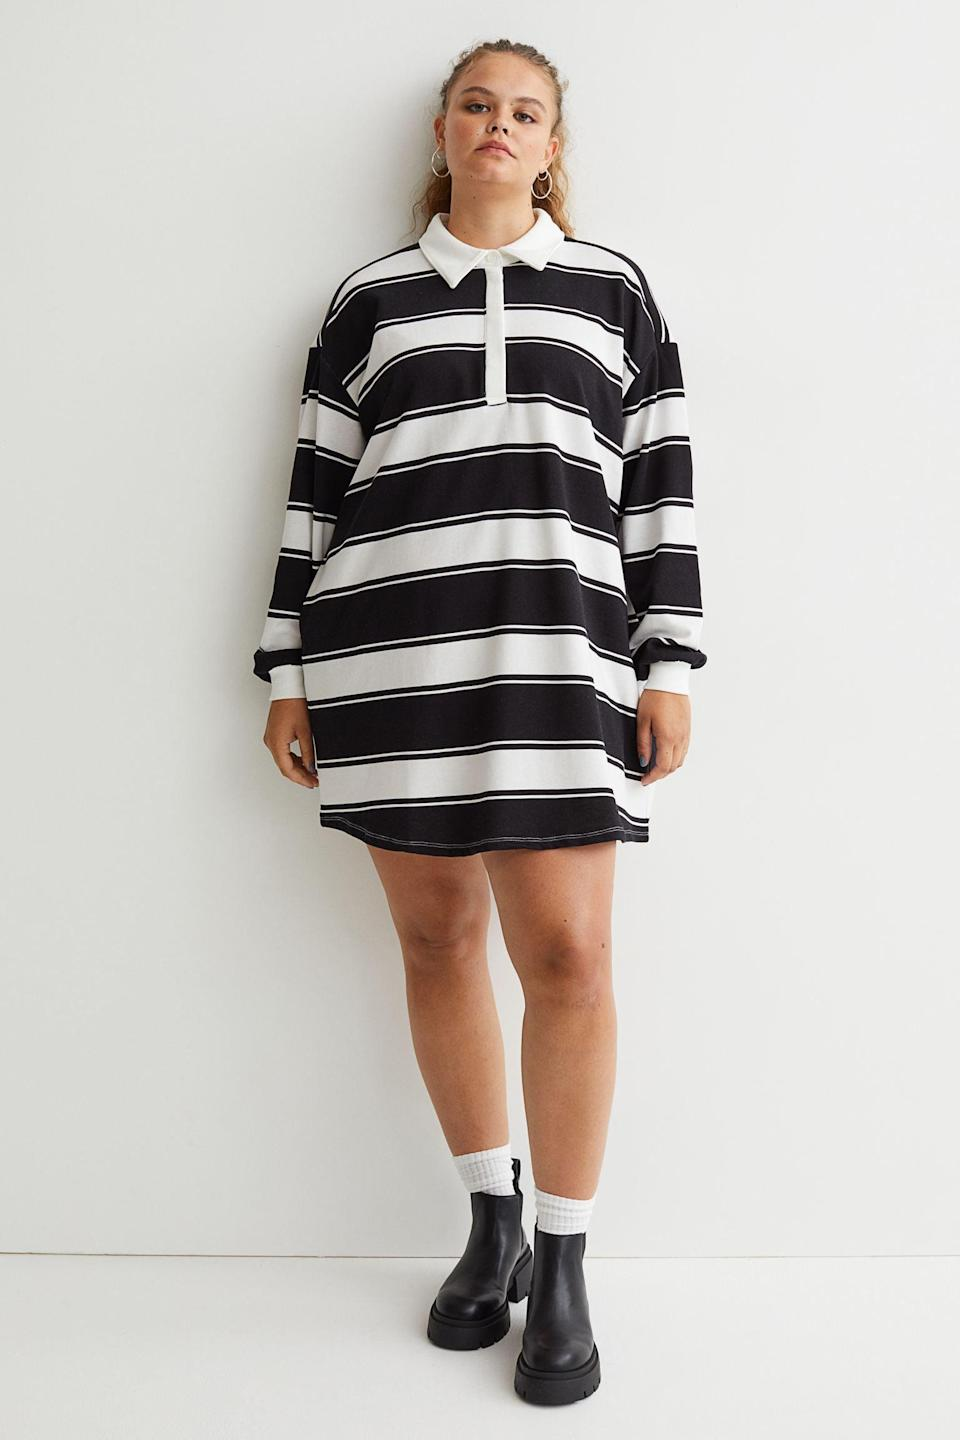 """<p>This preppy <span>H&amp;M+ Collared Dress</span> ($30) will look even more laidback with <a href=""""https://www.popsugar.com/fashion/best-chelsea-boots-for-women-48507110"""" class=""""link rapid-noclick-resp"""" rel=""""nofollow noopener"""" target=""""_blank"""" data-ylk=""""slk:Chelsea Boots"""">Chelsea Boots</a> and socks. We love the casual and easygoing silhouette.</p>"""